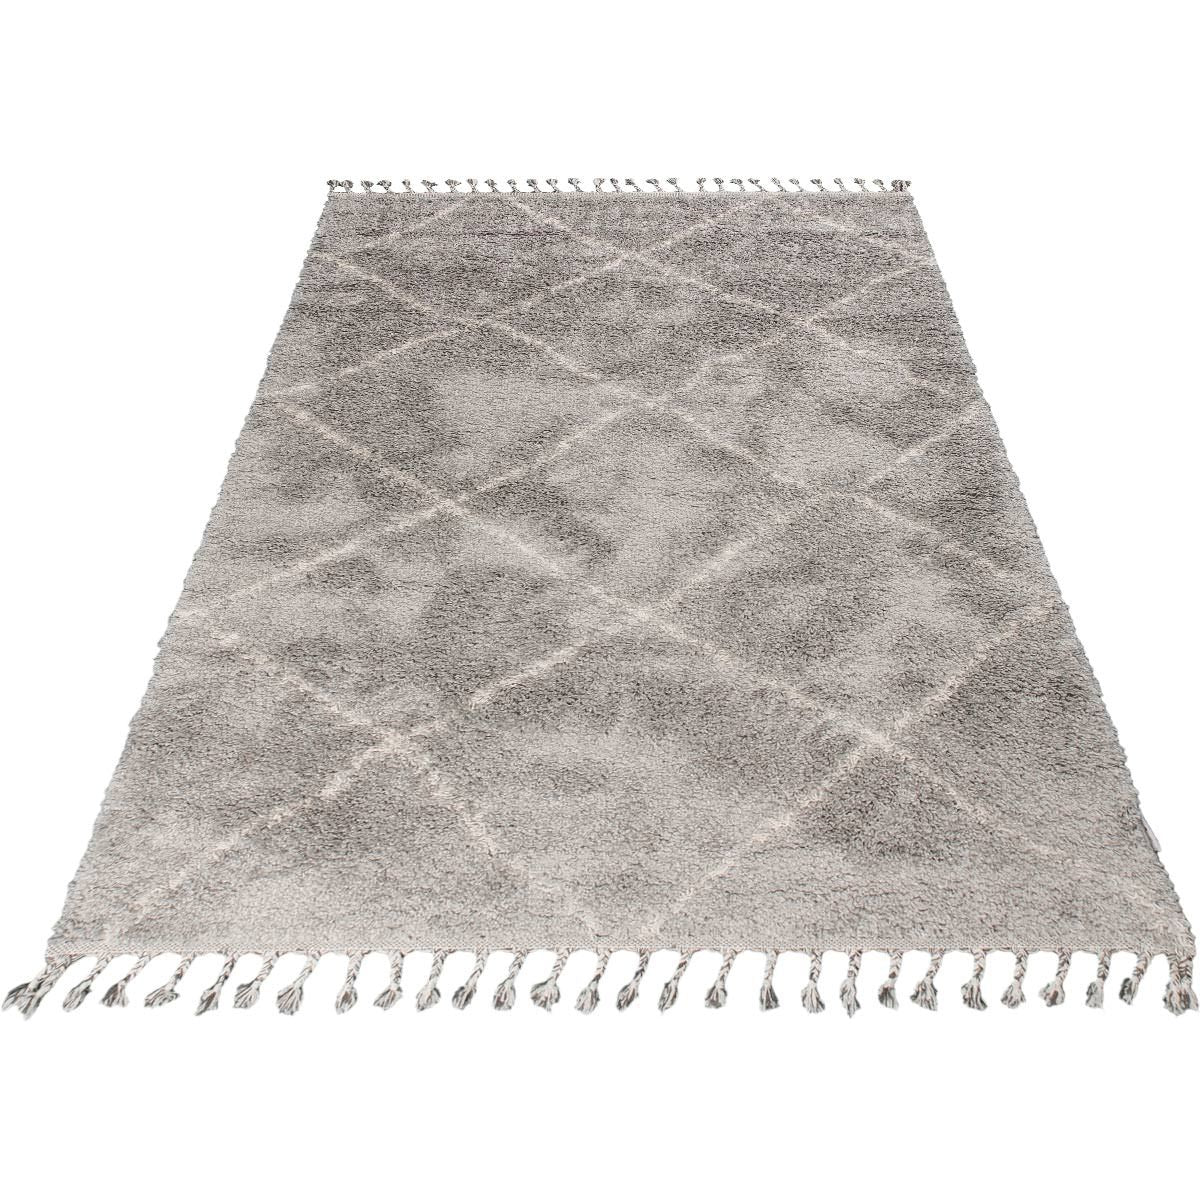 Shaggy Marrakech Rug 07 Grey/Cream 7